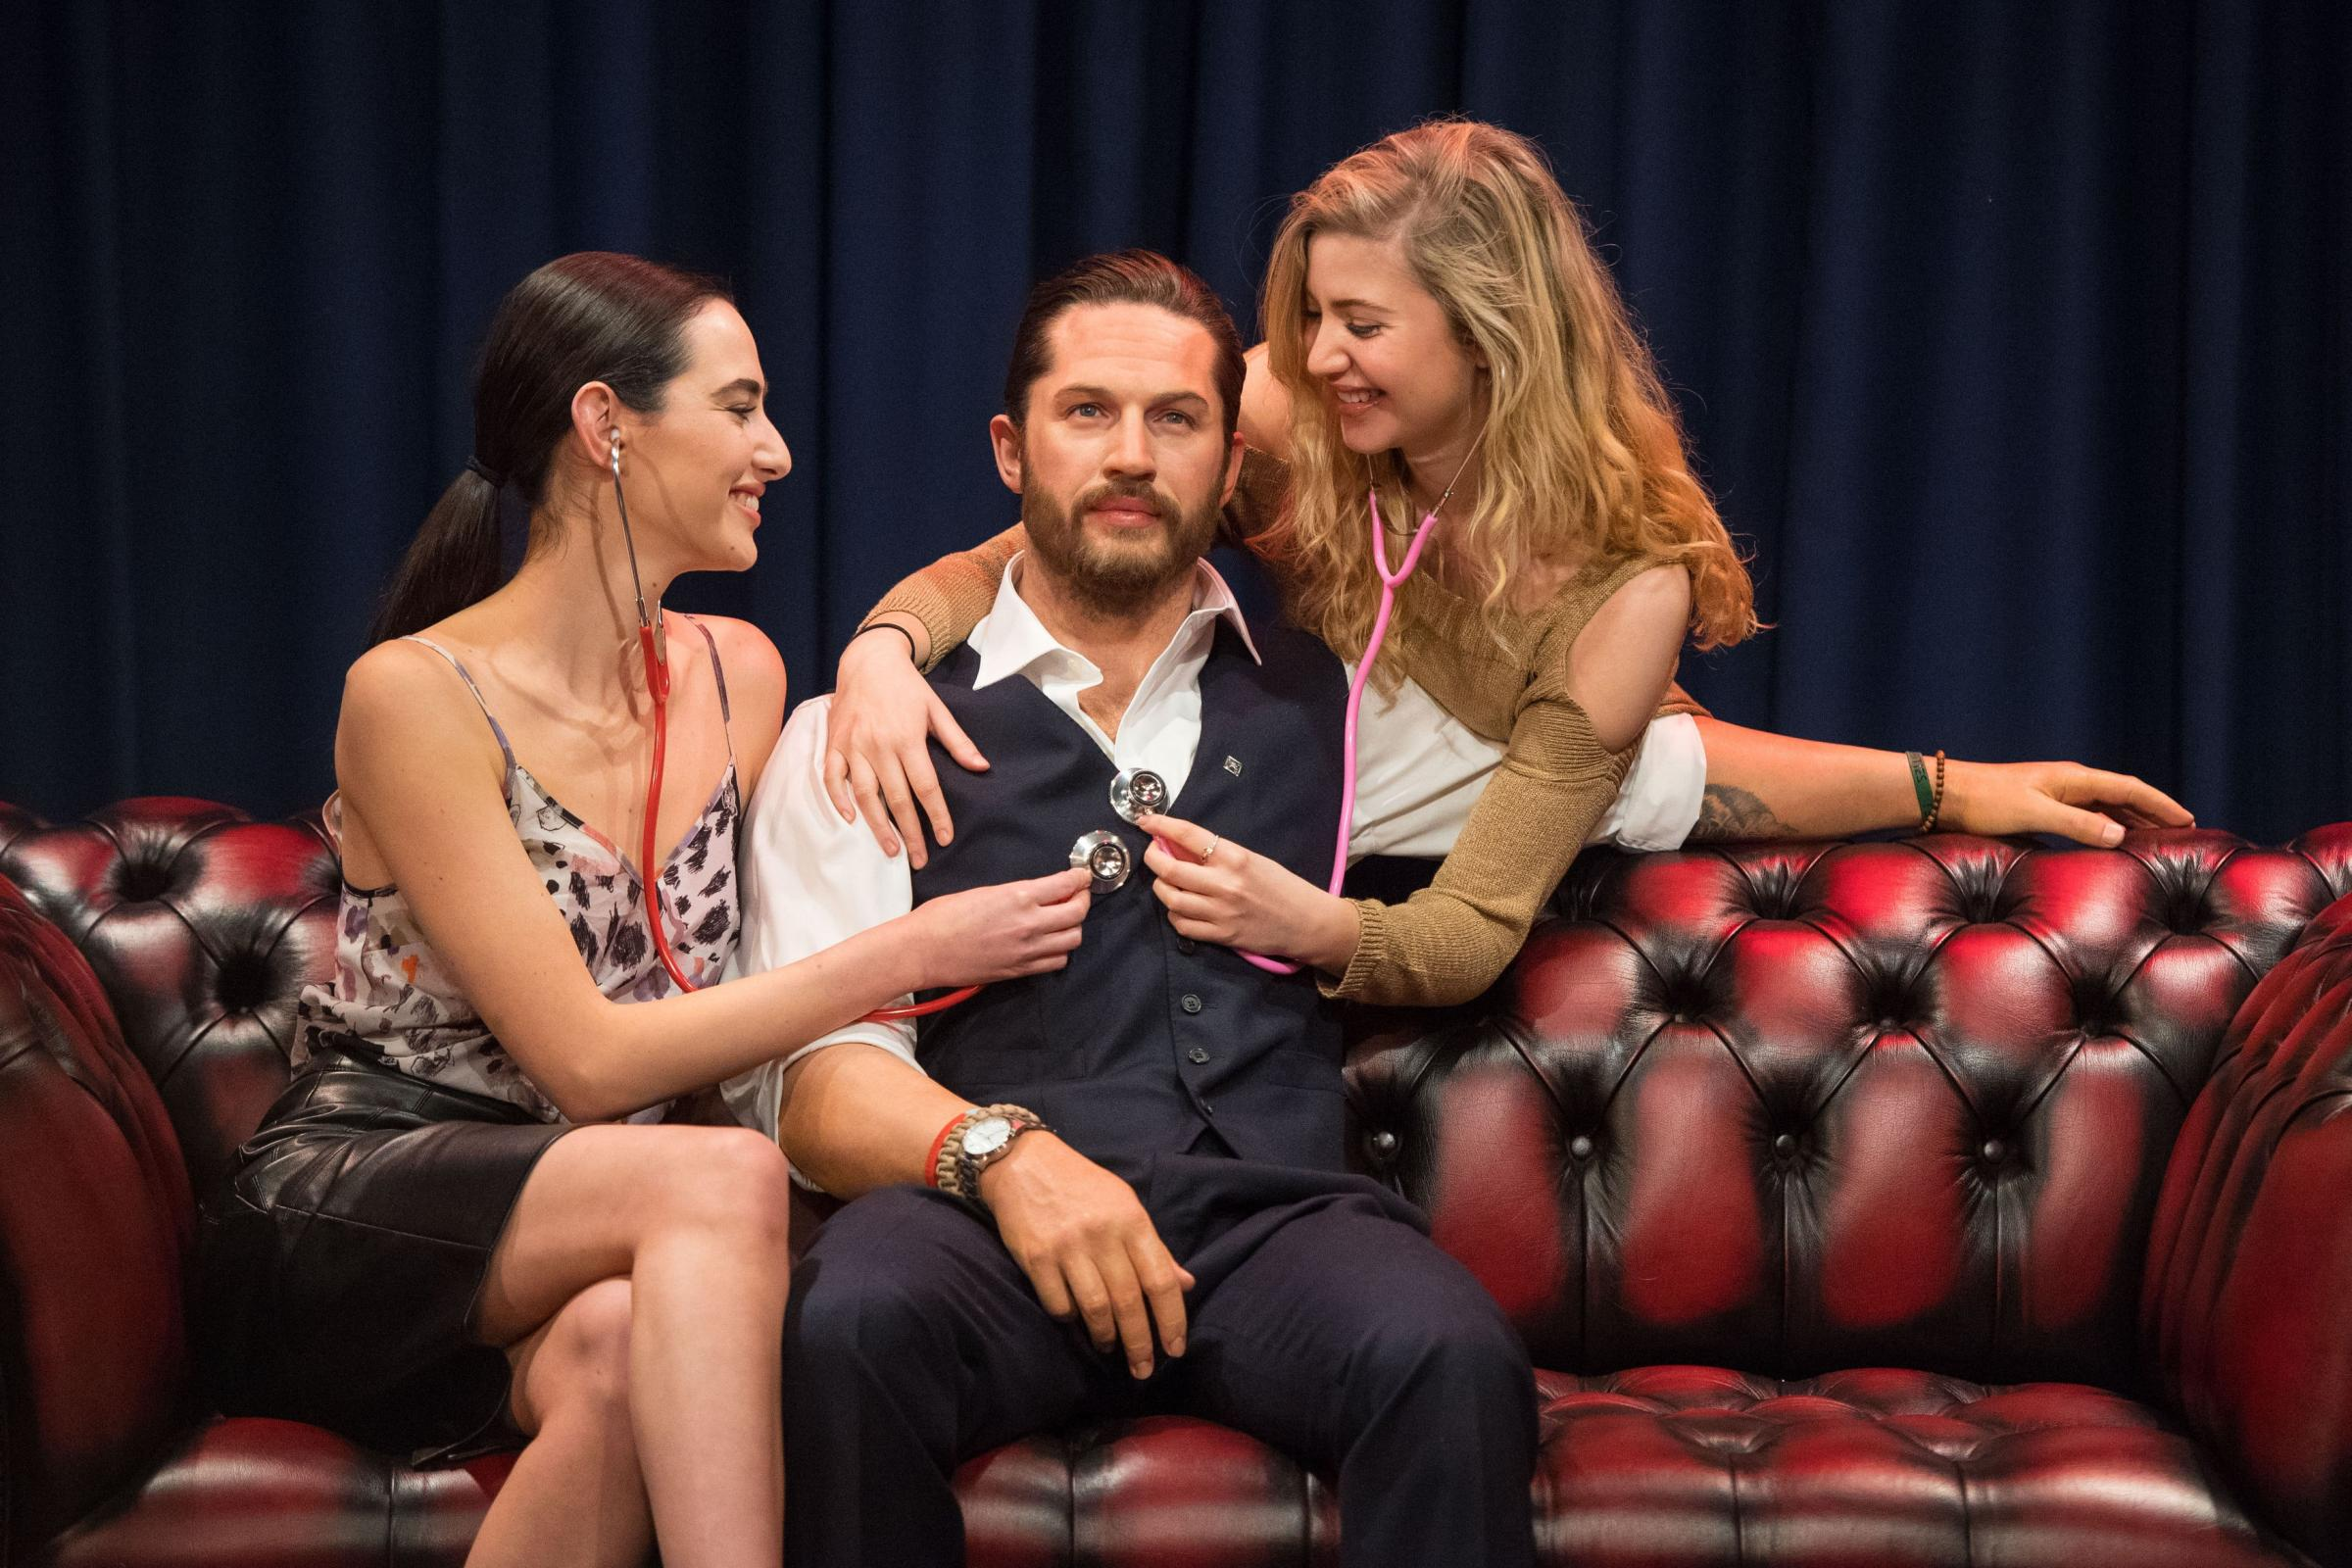 Tom Hardy waxwork unveiled at Madame Tussauds (Dominic Lipinski/PA)